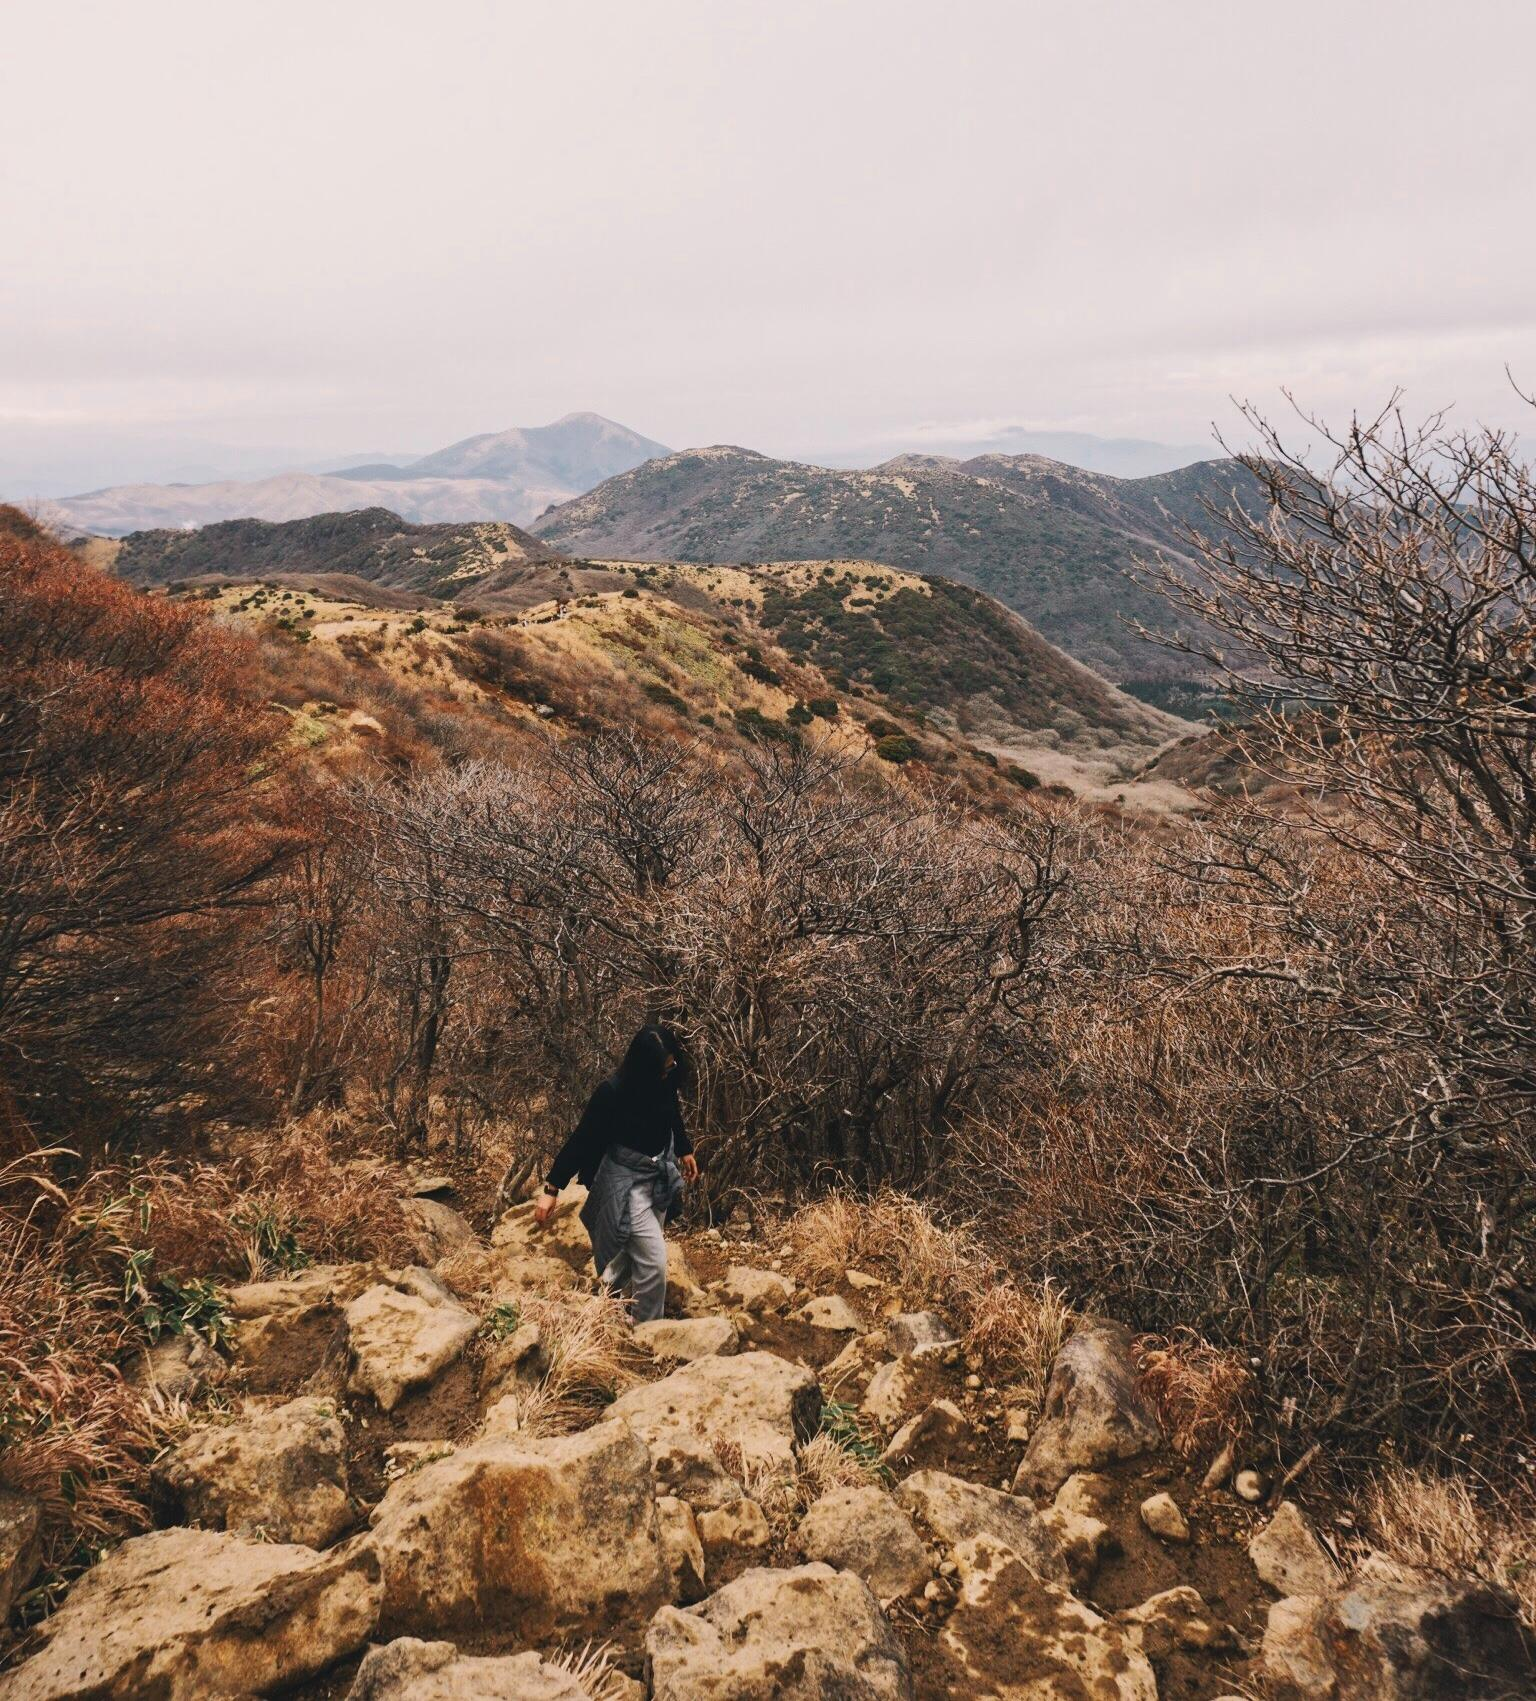 A picture of a woman sitting amidst rocks overlooking the rocky landscape